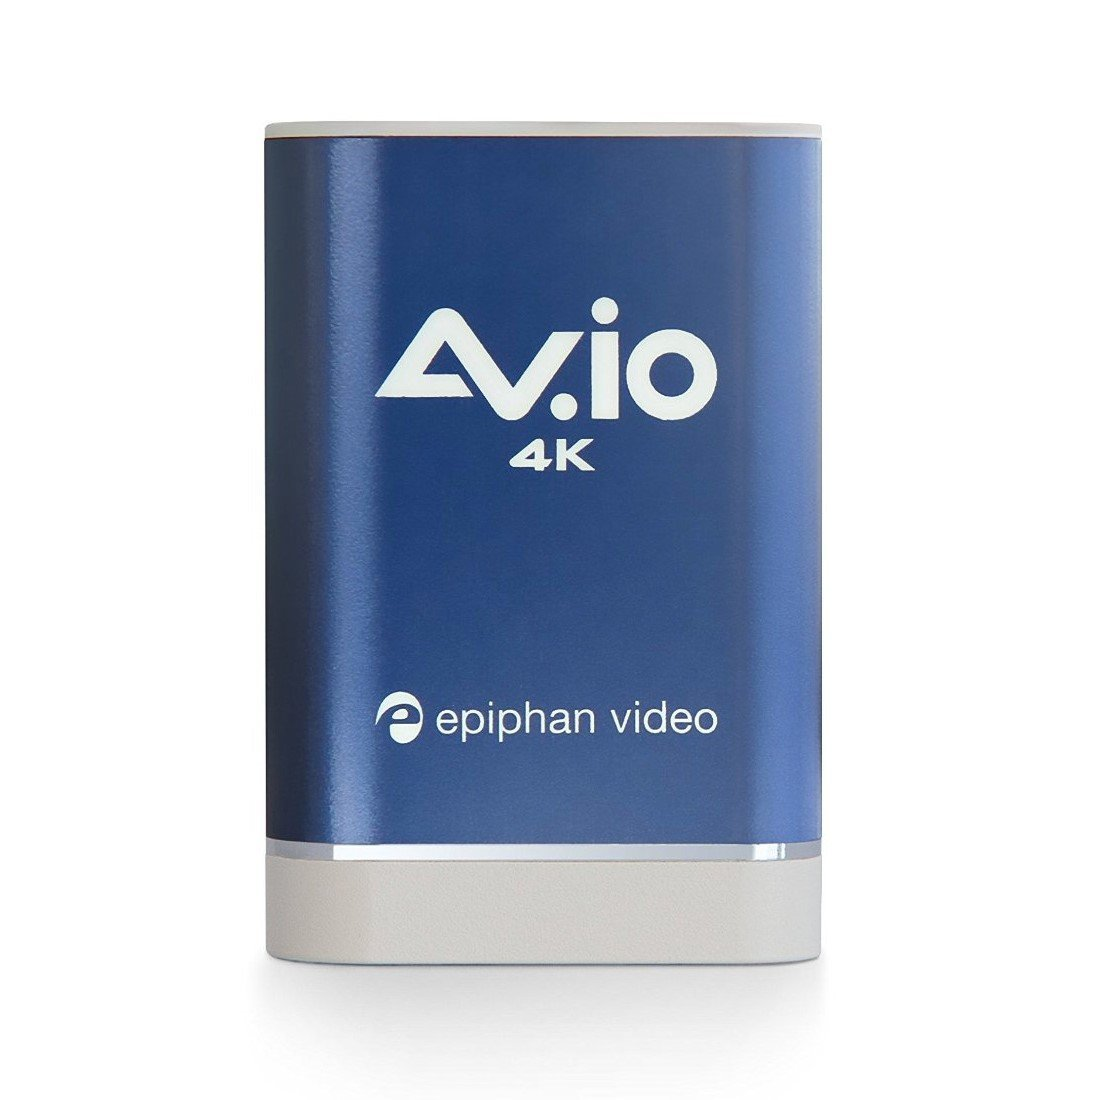 Amazon.com: AV.io 4K - Grab and Go USB video capture for HD 1080p 60 fps and UHD 4K 30 fps: Cell Phones & Accessories